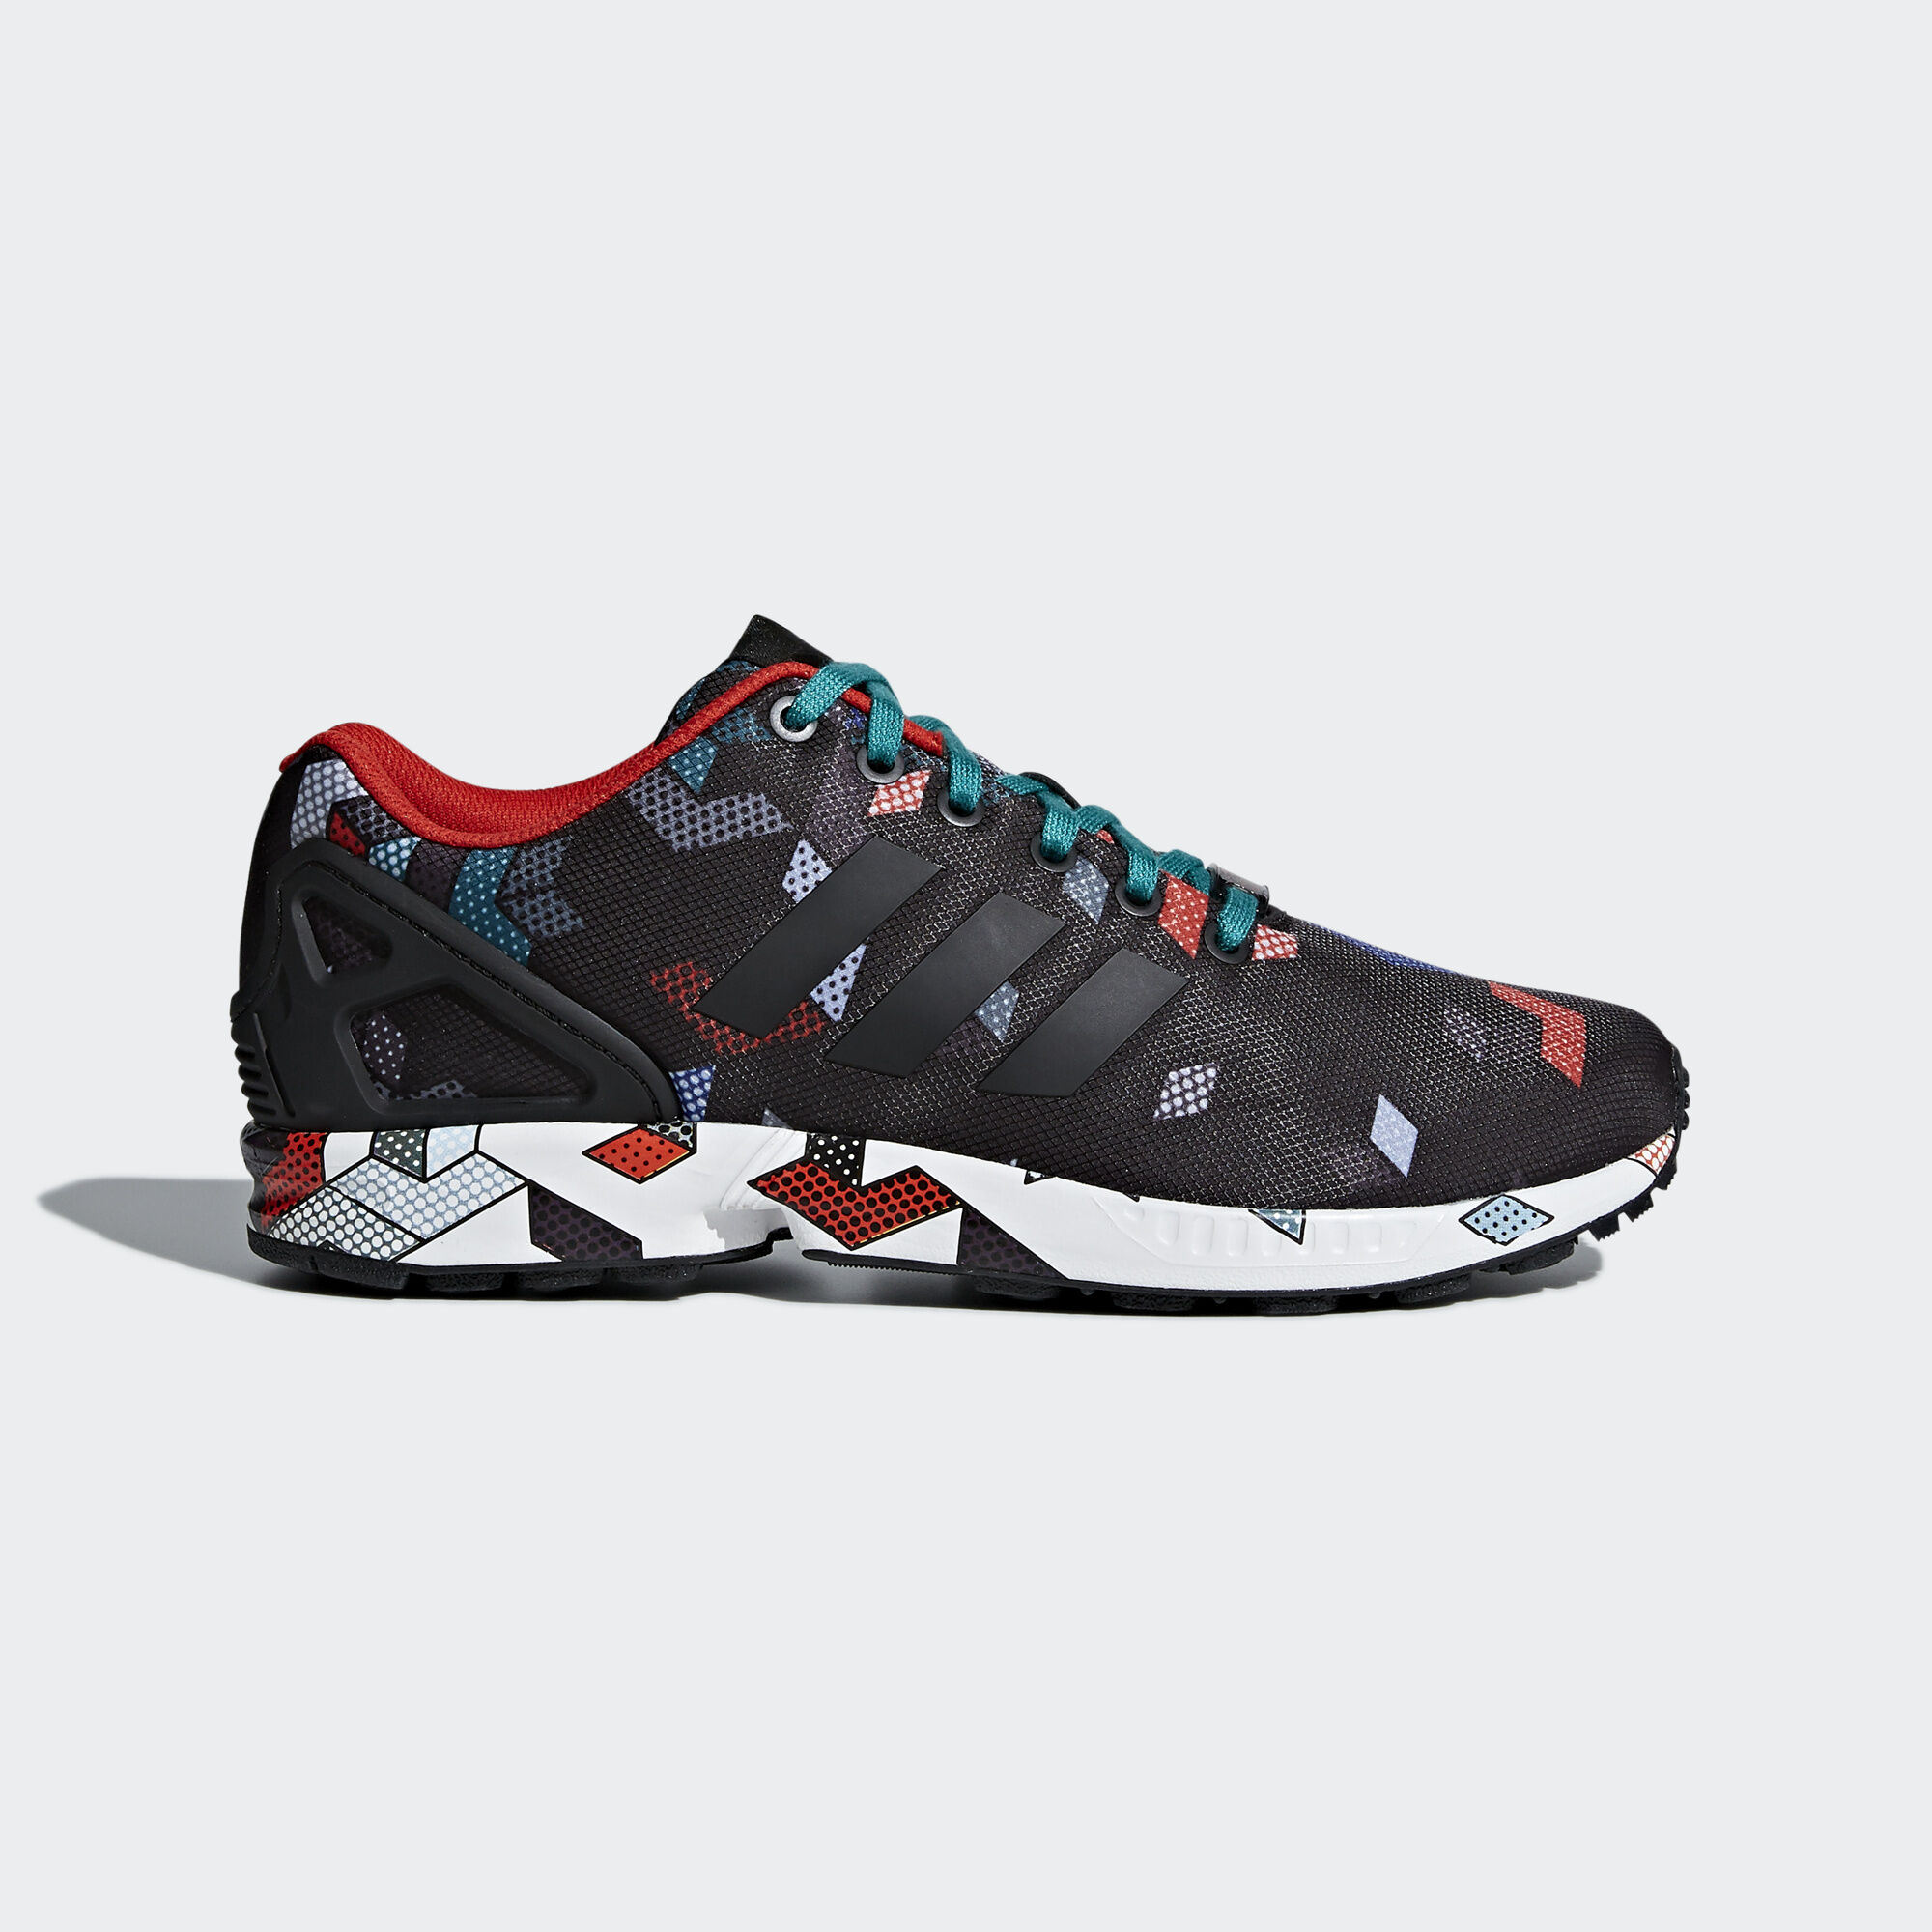 Zapatillas Adidas Zx Flux Chile